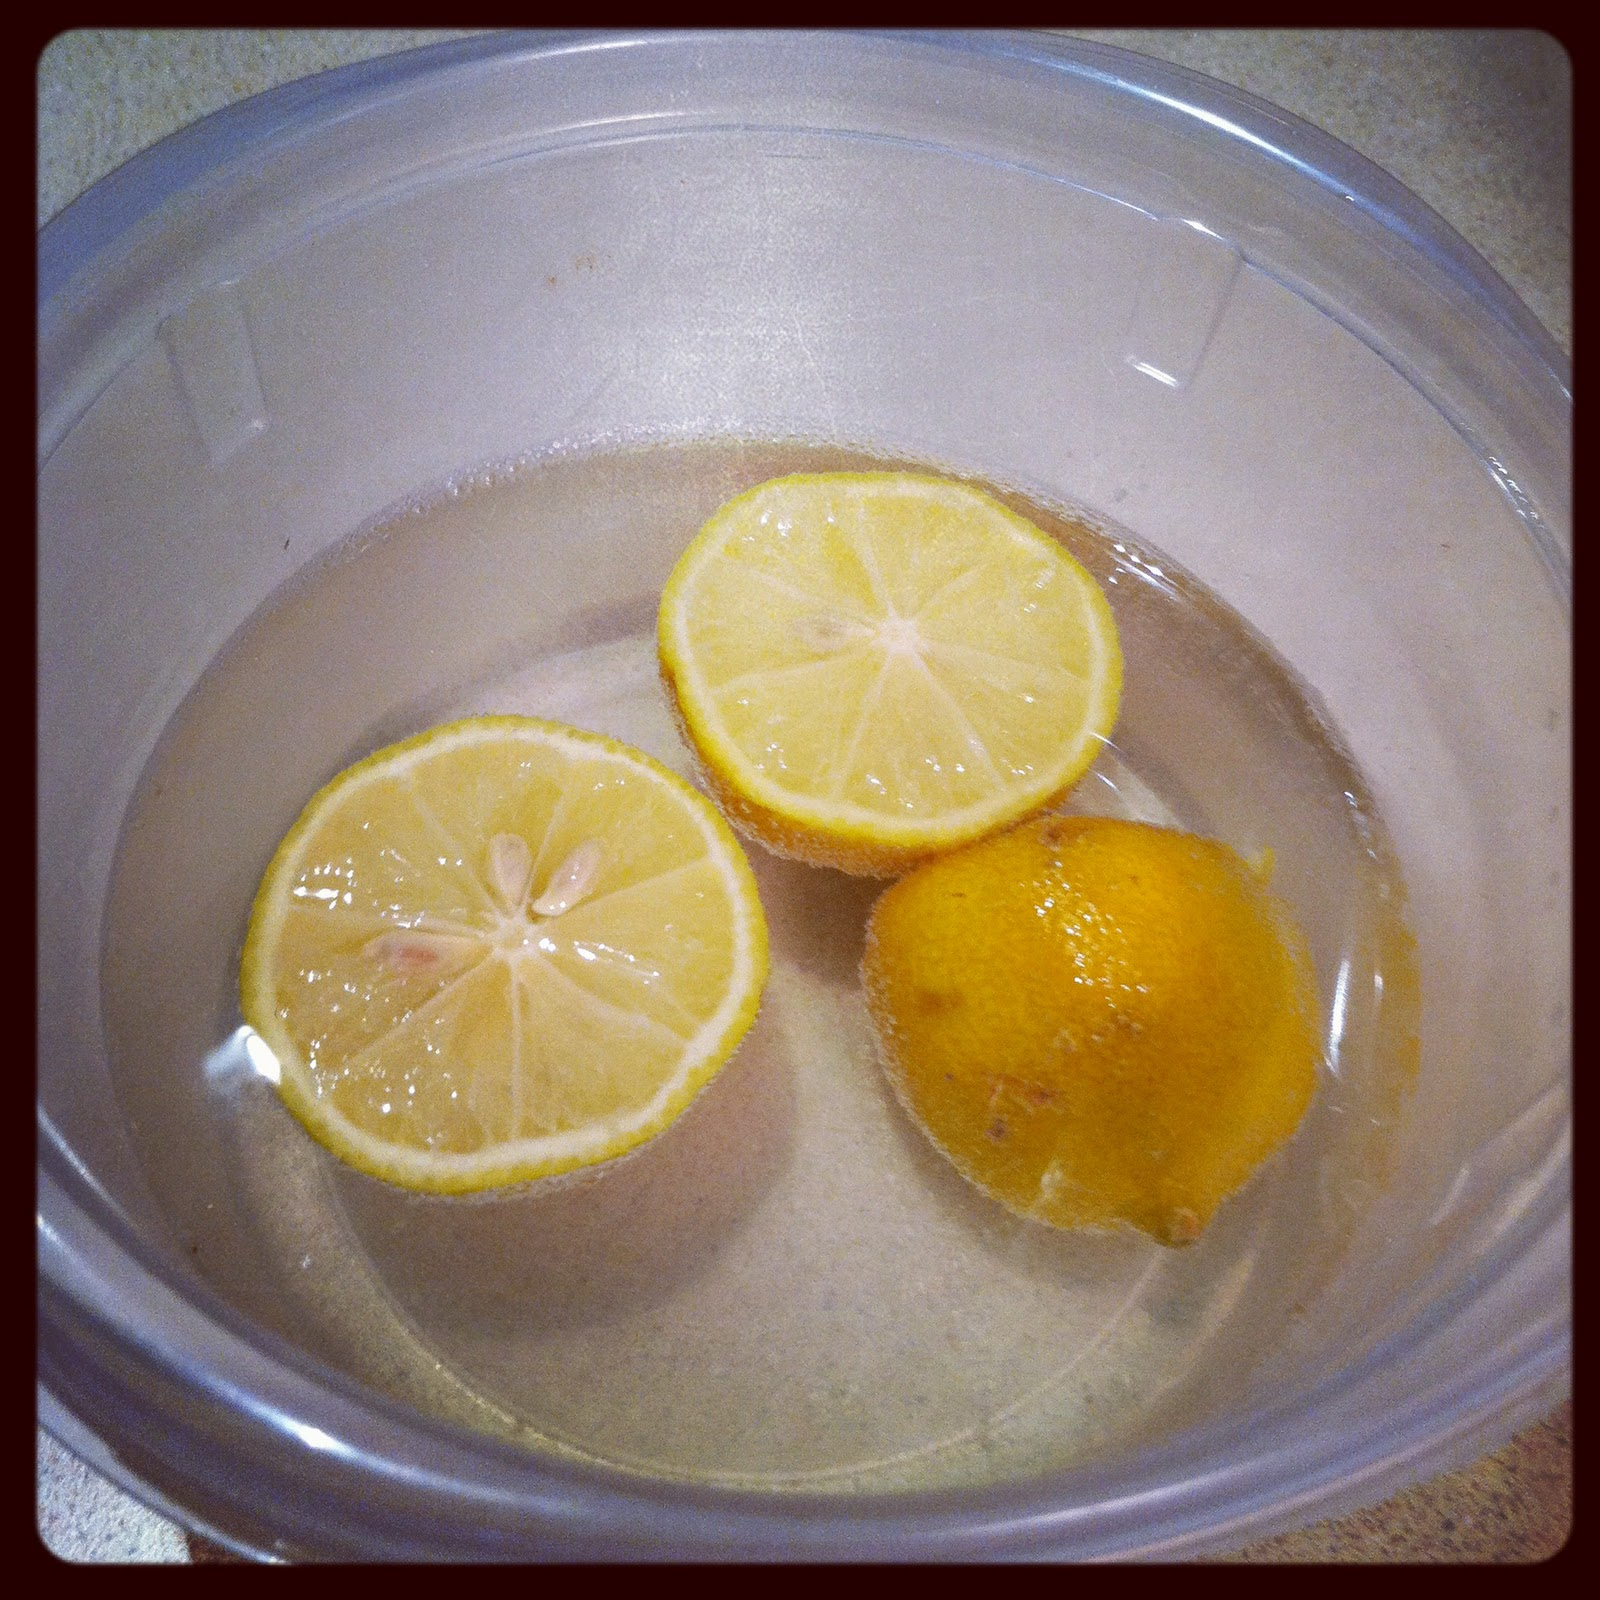 Cleaning A Microwave Oven With Lemon: Quest For Delish: Cleaning Microwave